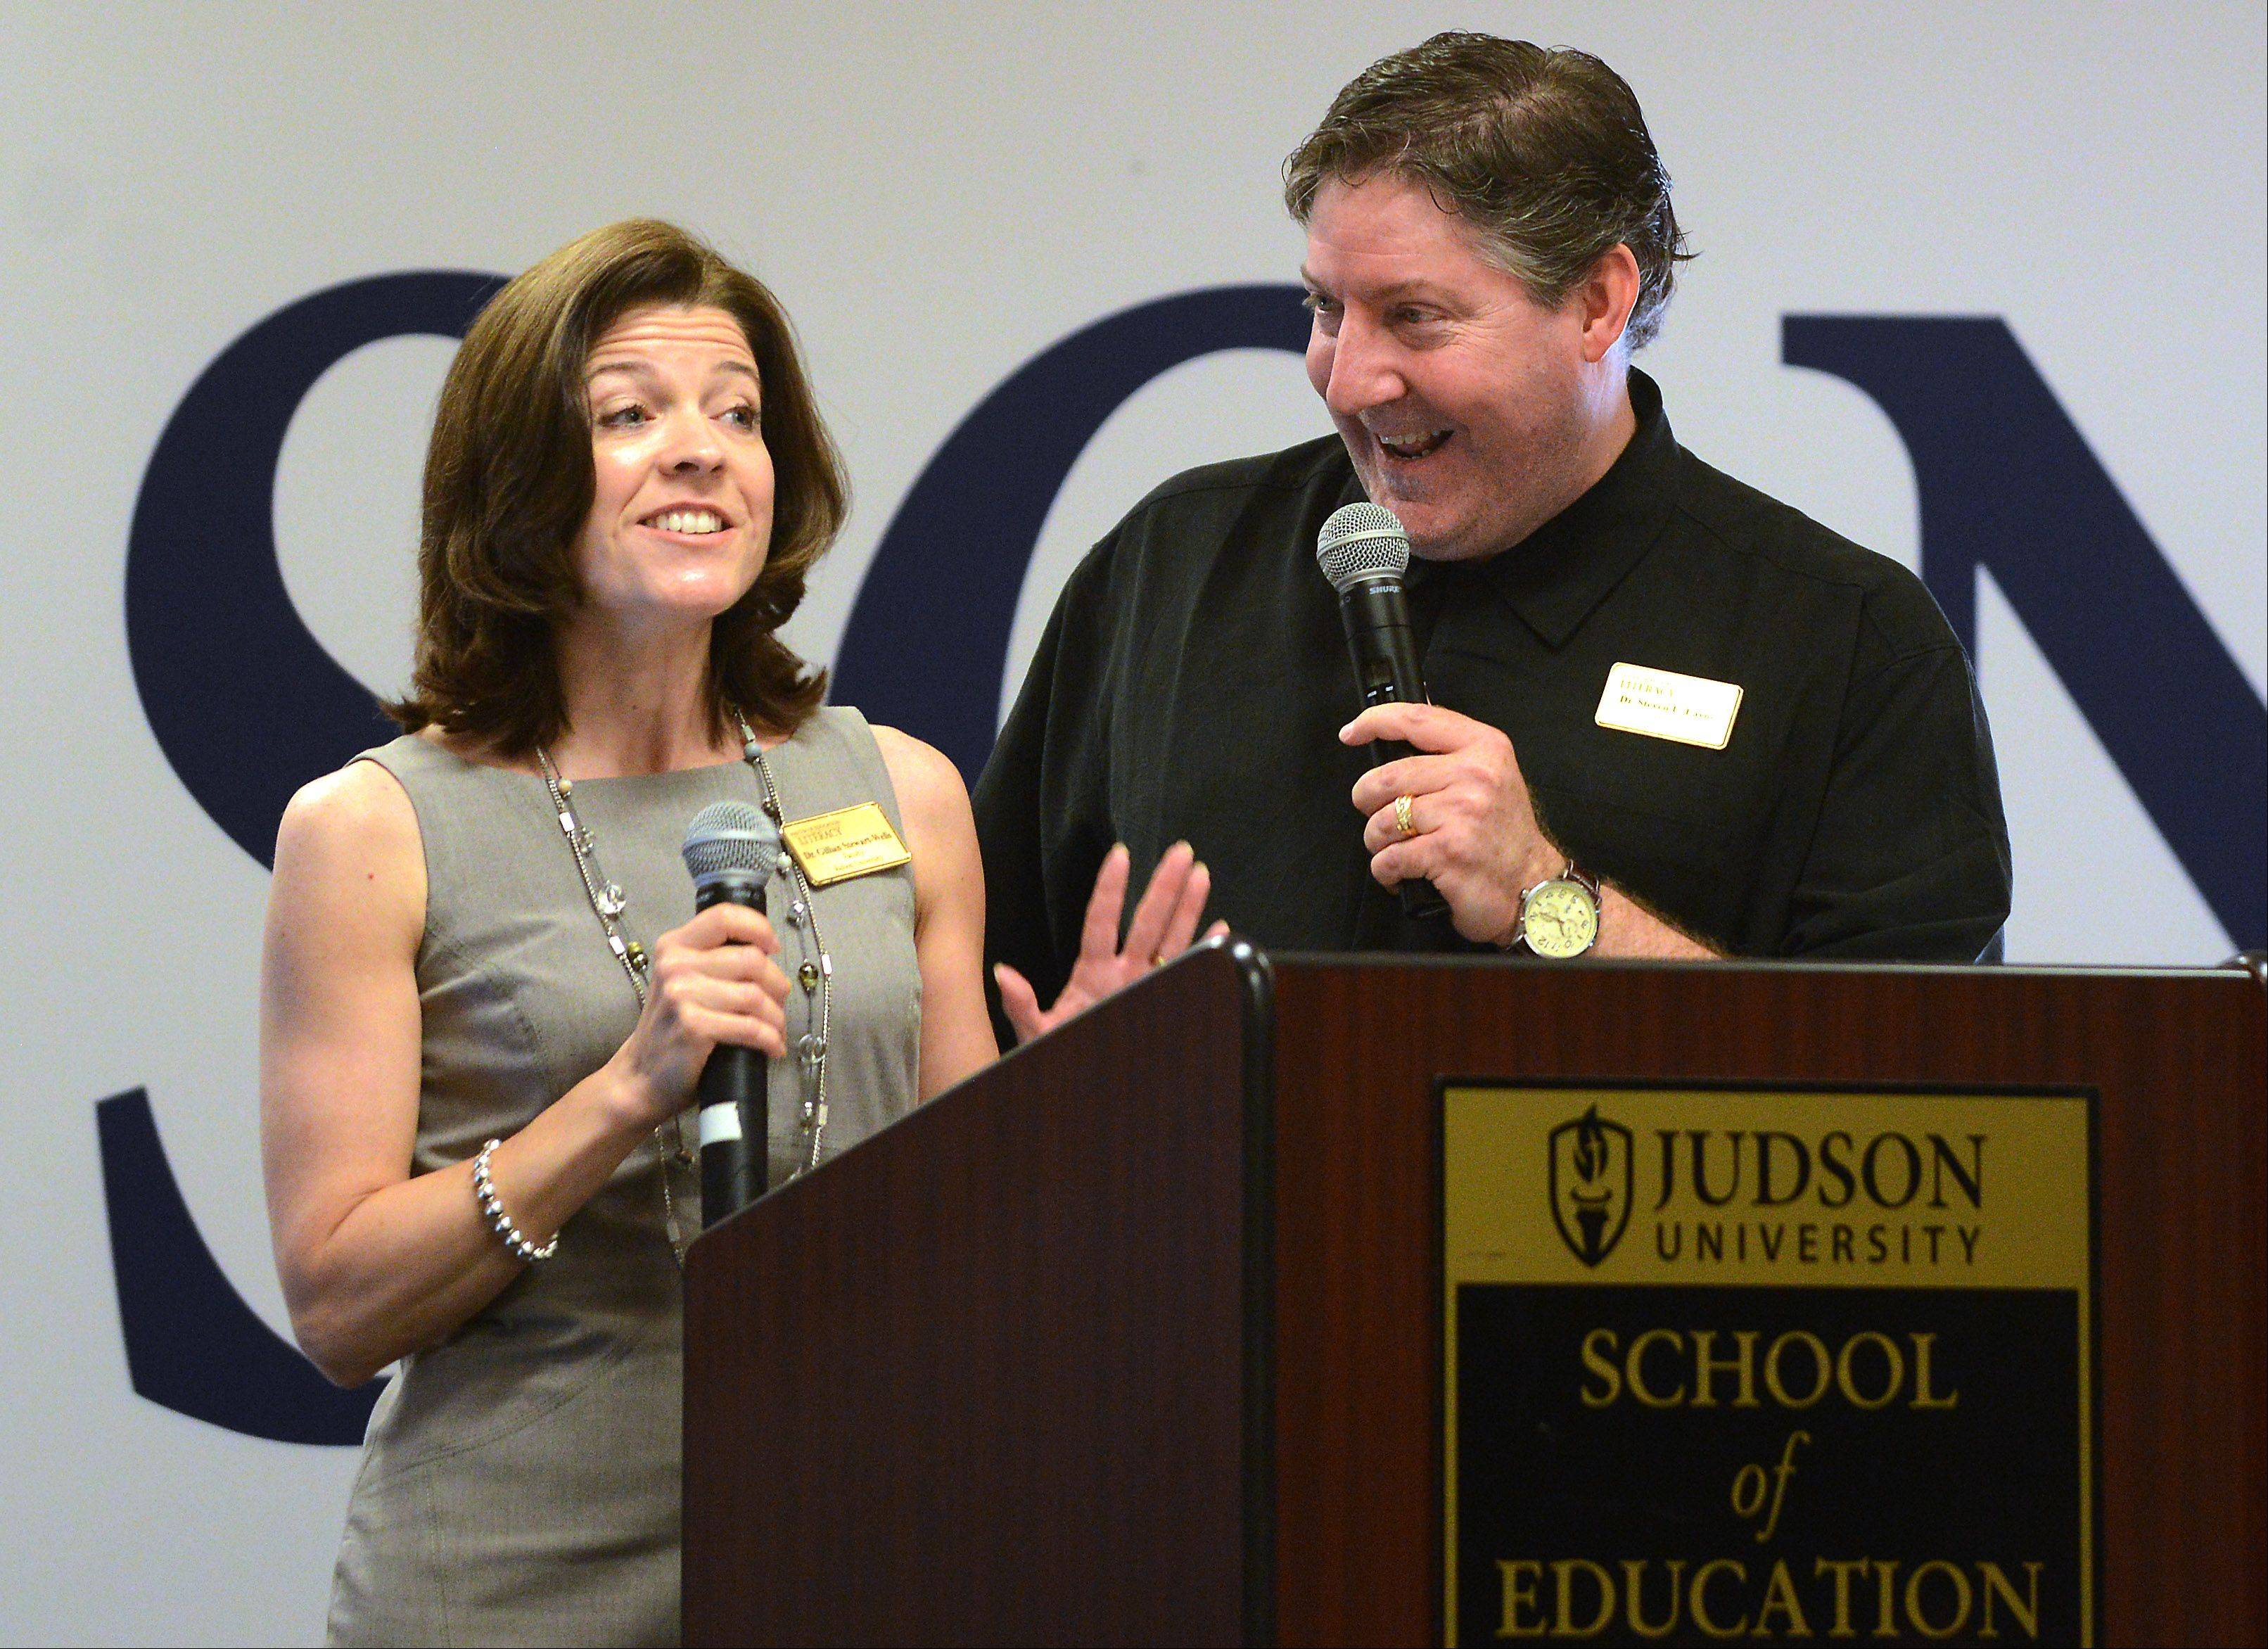 Gillian Stewart-Wells and Steven Layne announced Monday that Judson University will offer its first Ph.D program, a doctorate of education in literacy.